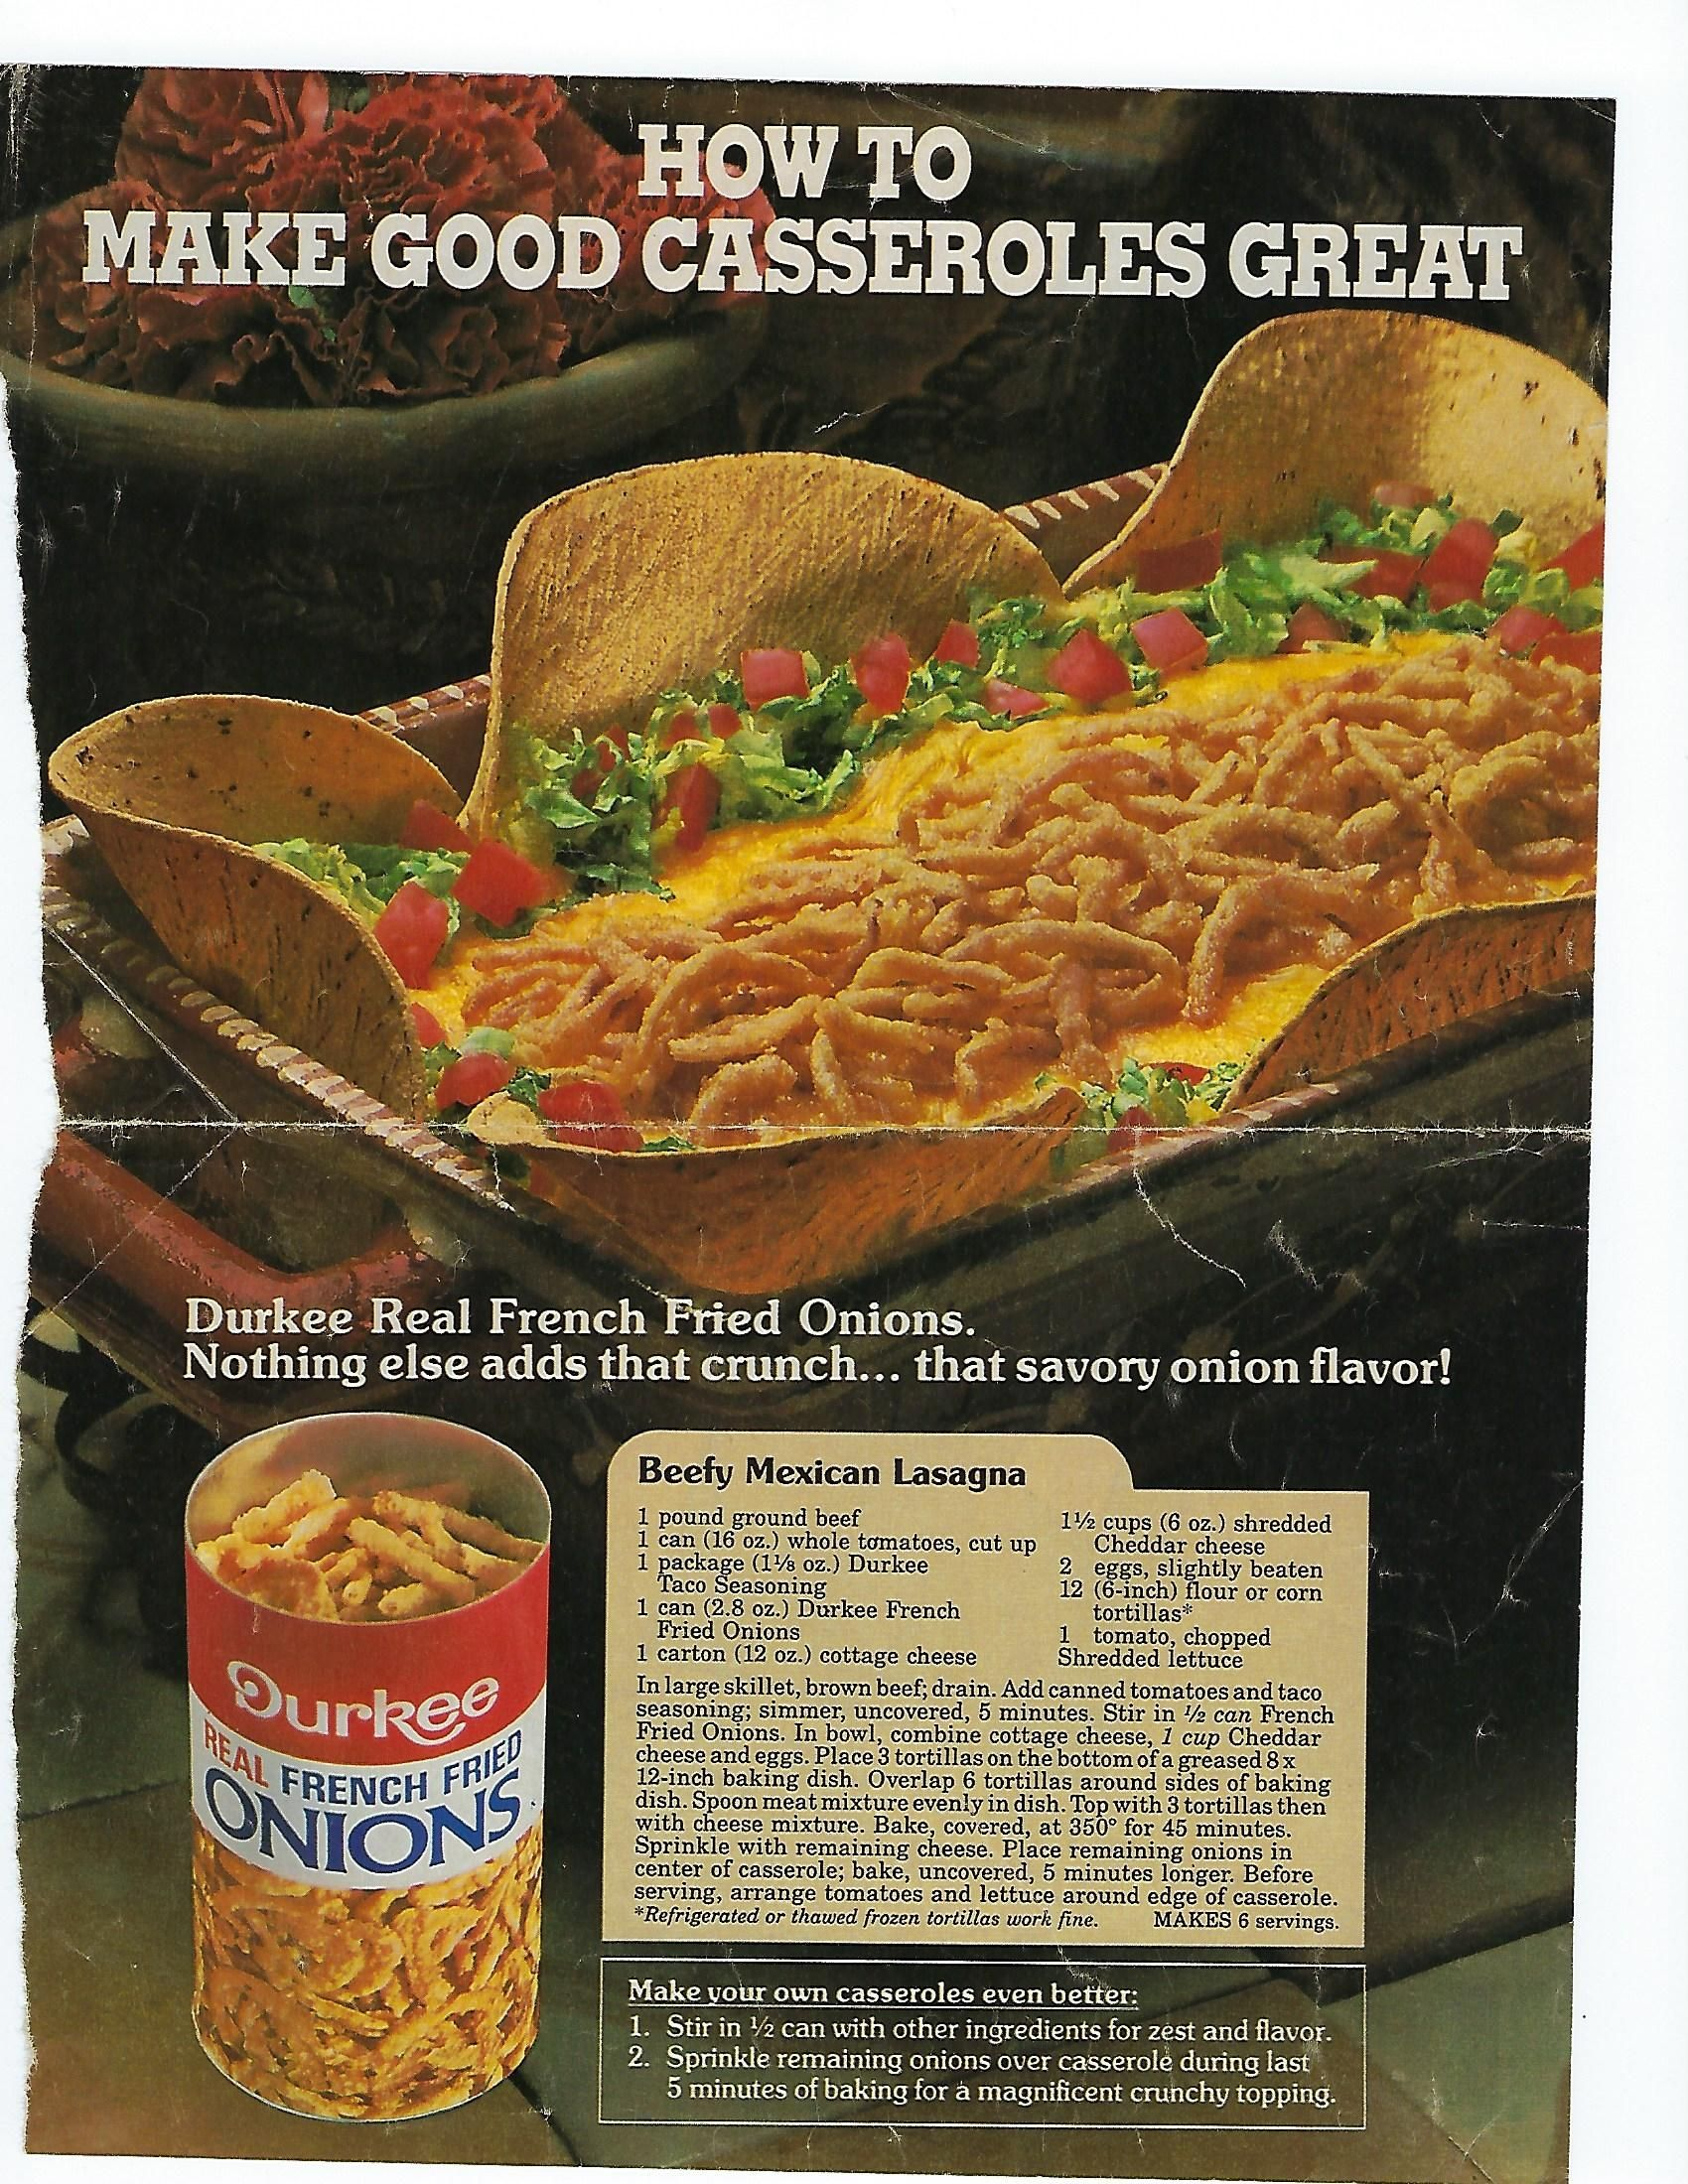 Durkee Beefy Mexican Lasagna Onion Recipes Best Casseroles French Fried Onions